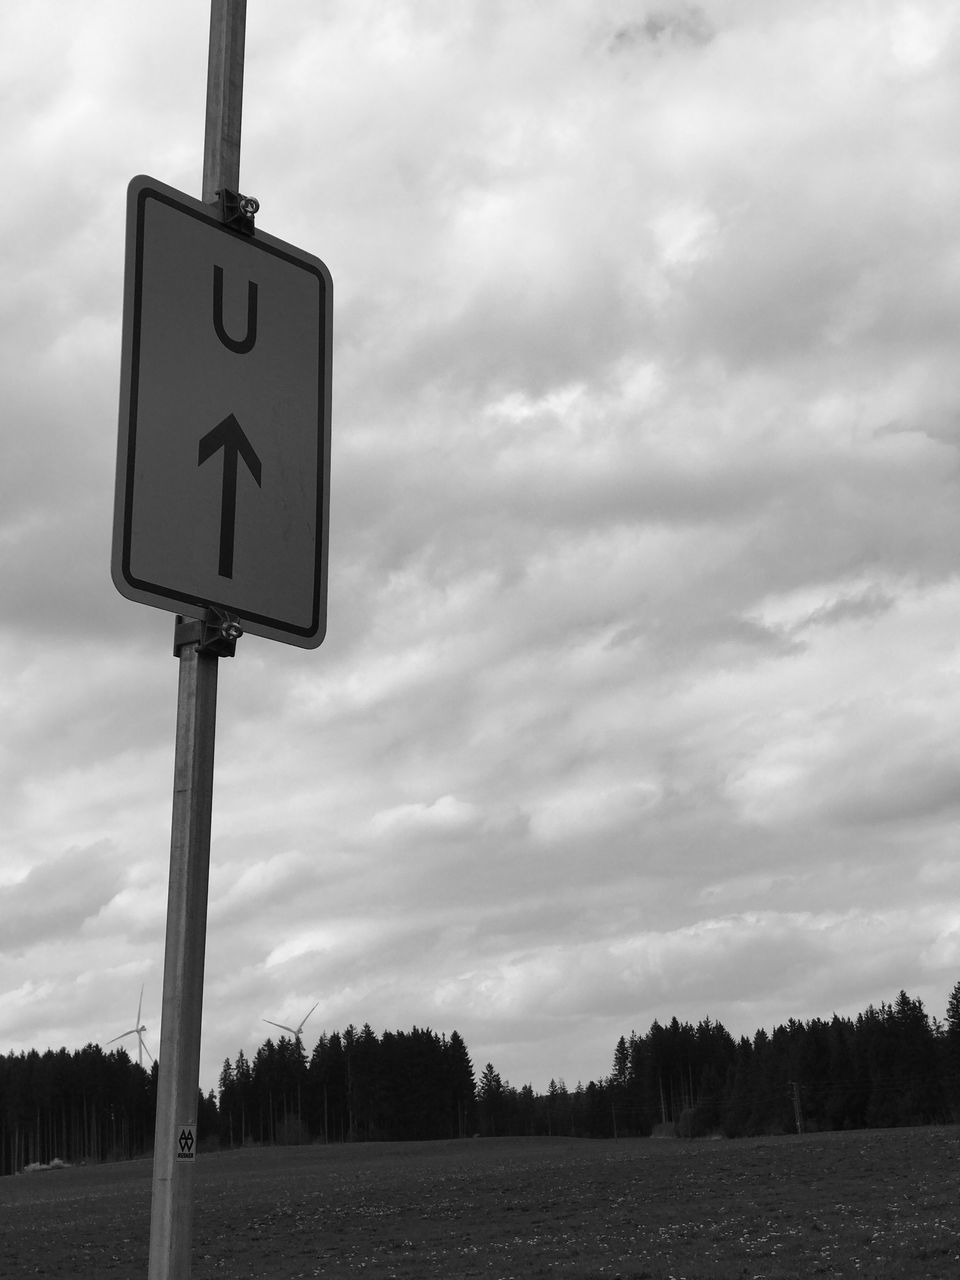 sky, communication, cloud - sky, guidance, day, road sign, outdoors, no people, nature, road